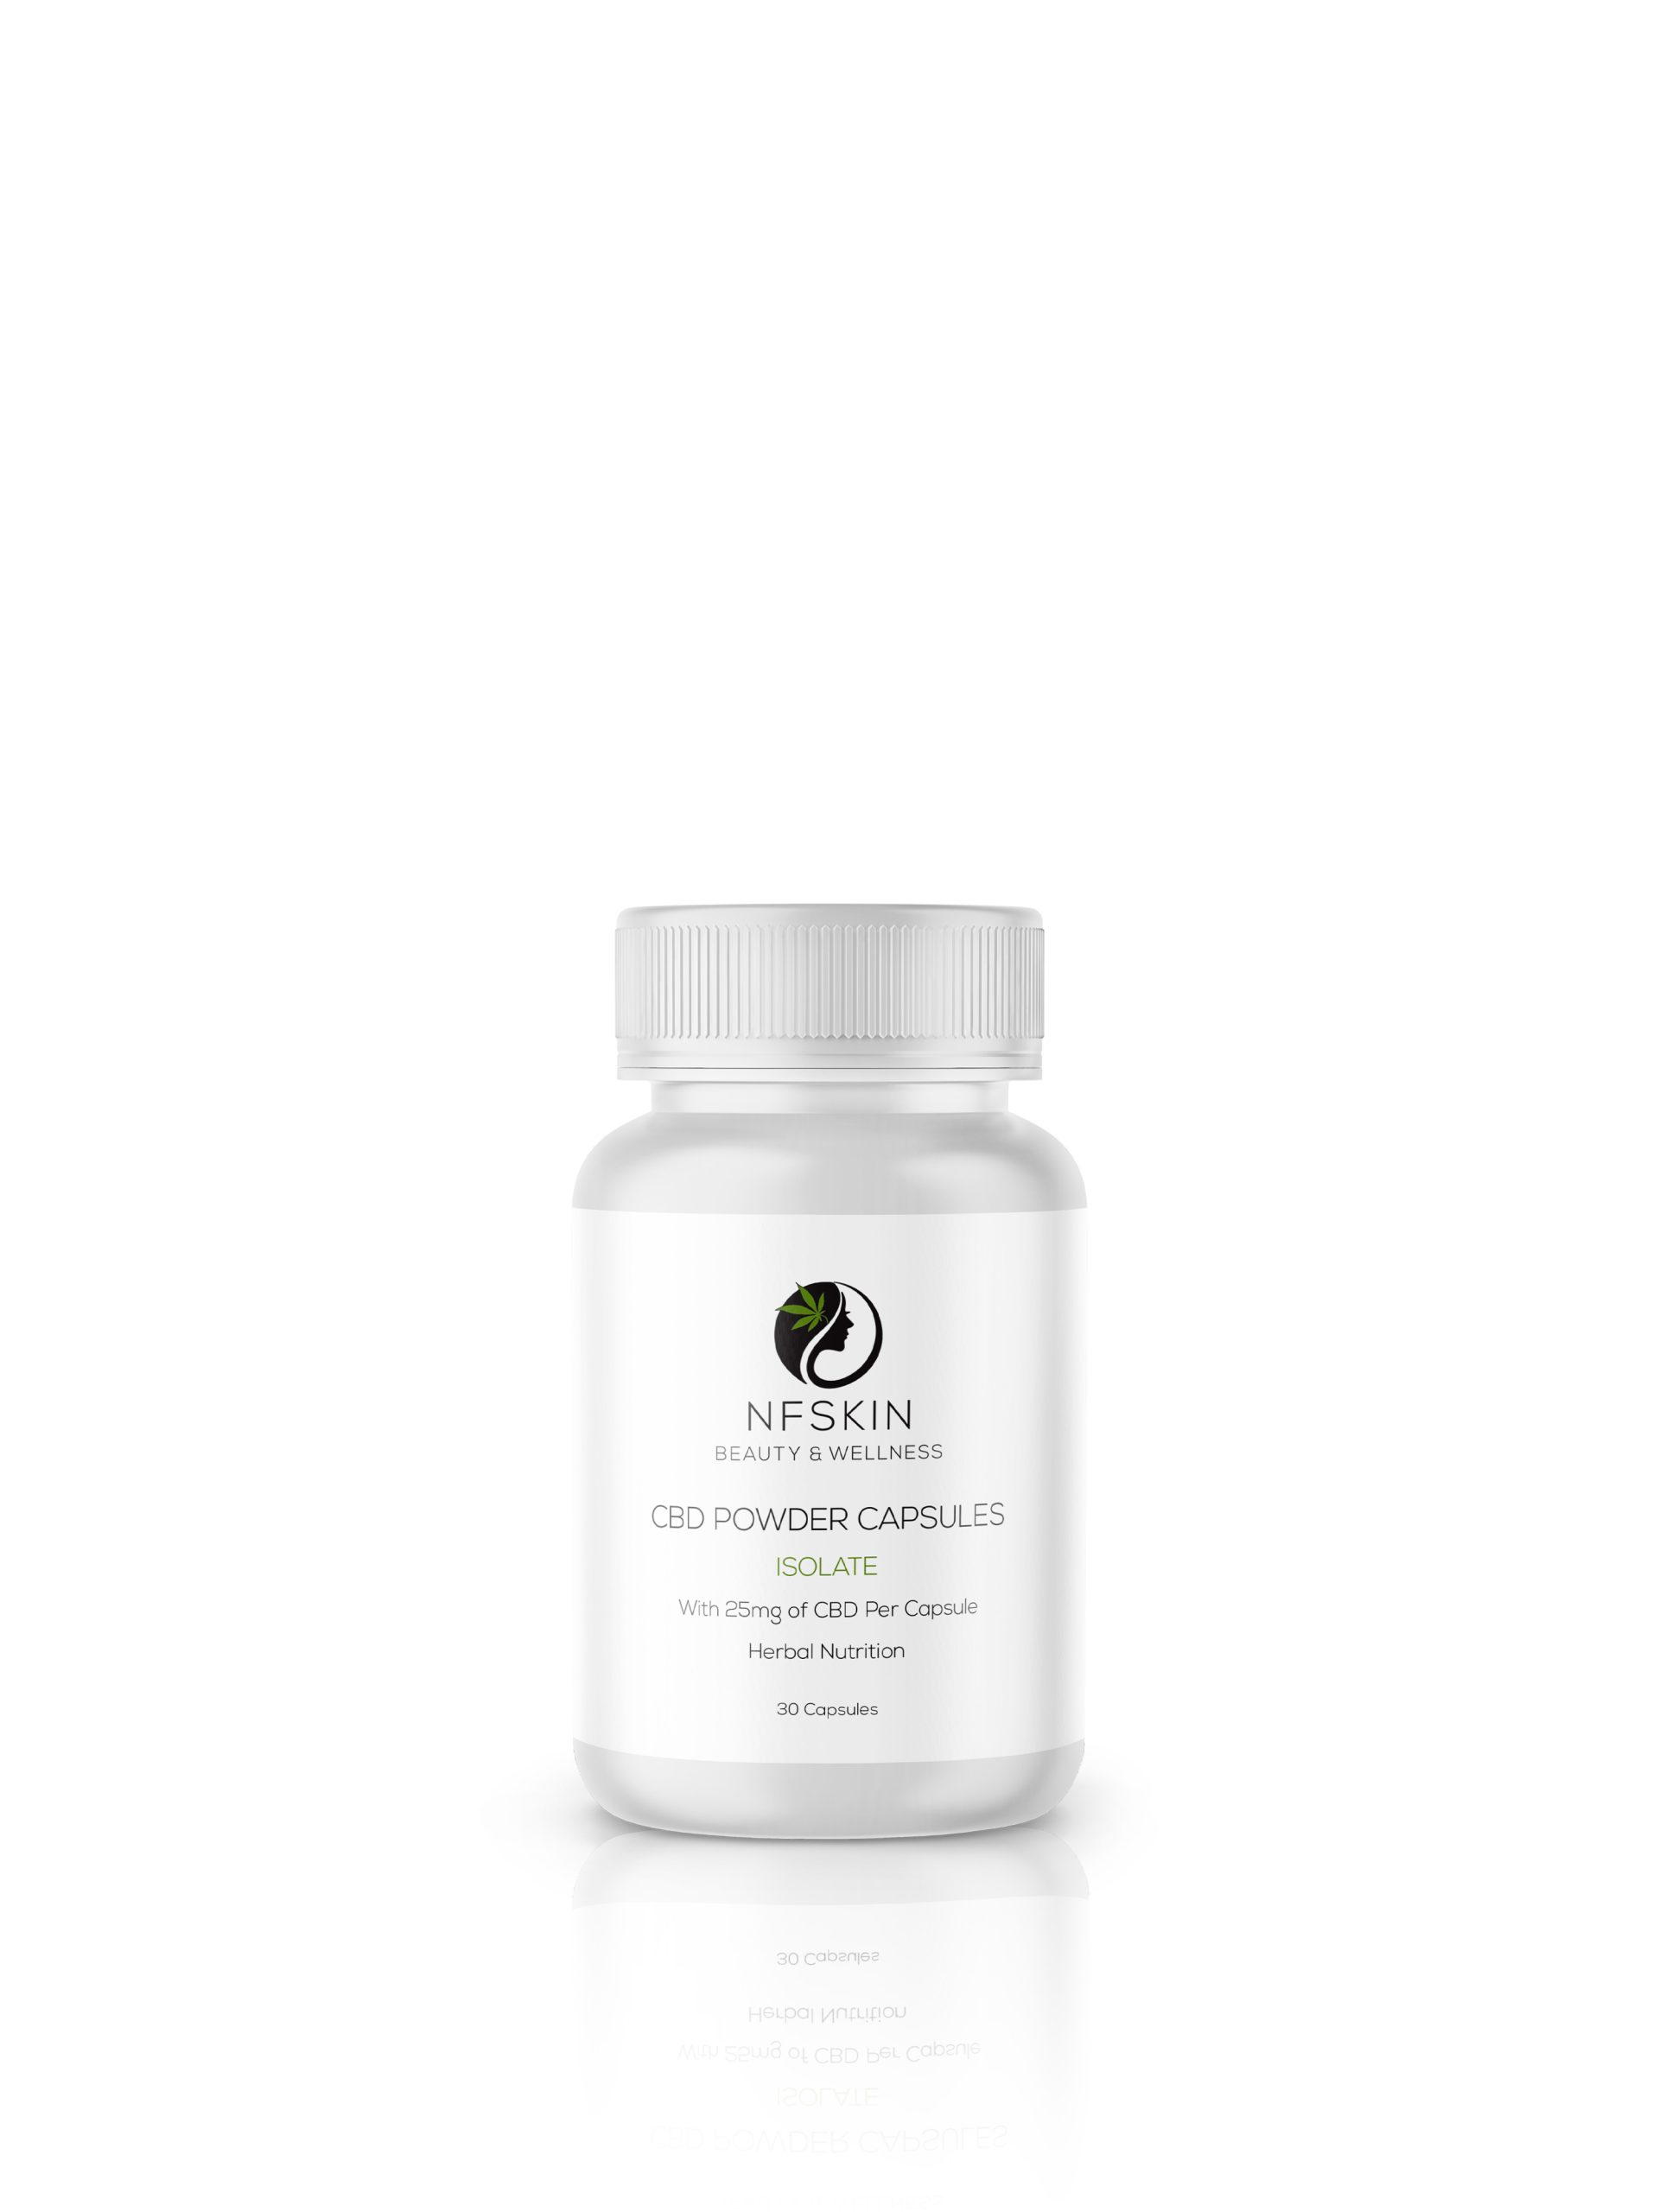 25mg ISO CBD Powder Capsules